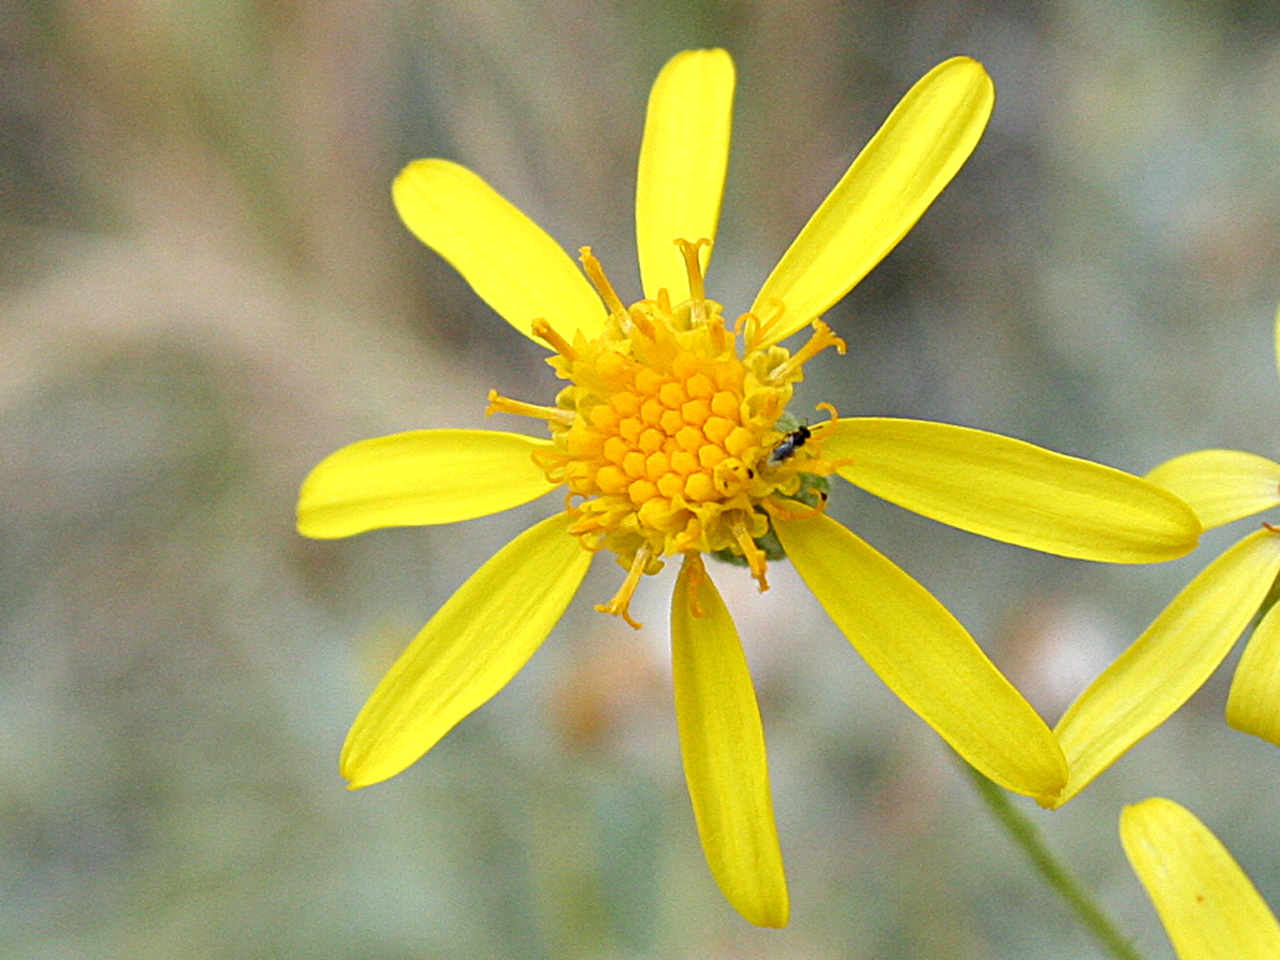 Dense, dark yellow central disk flowers and lighter yellow, sparsely arranged rays